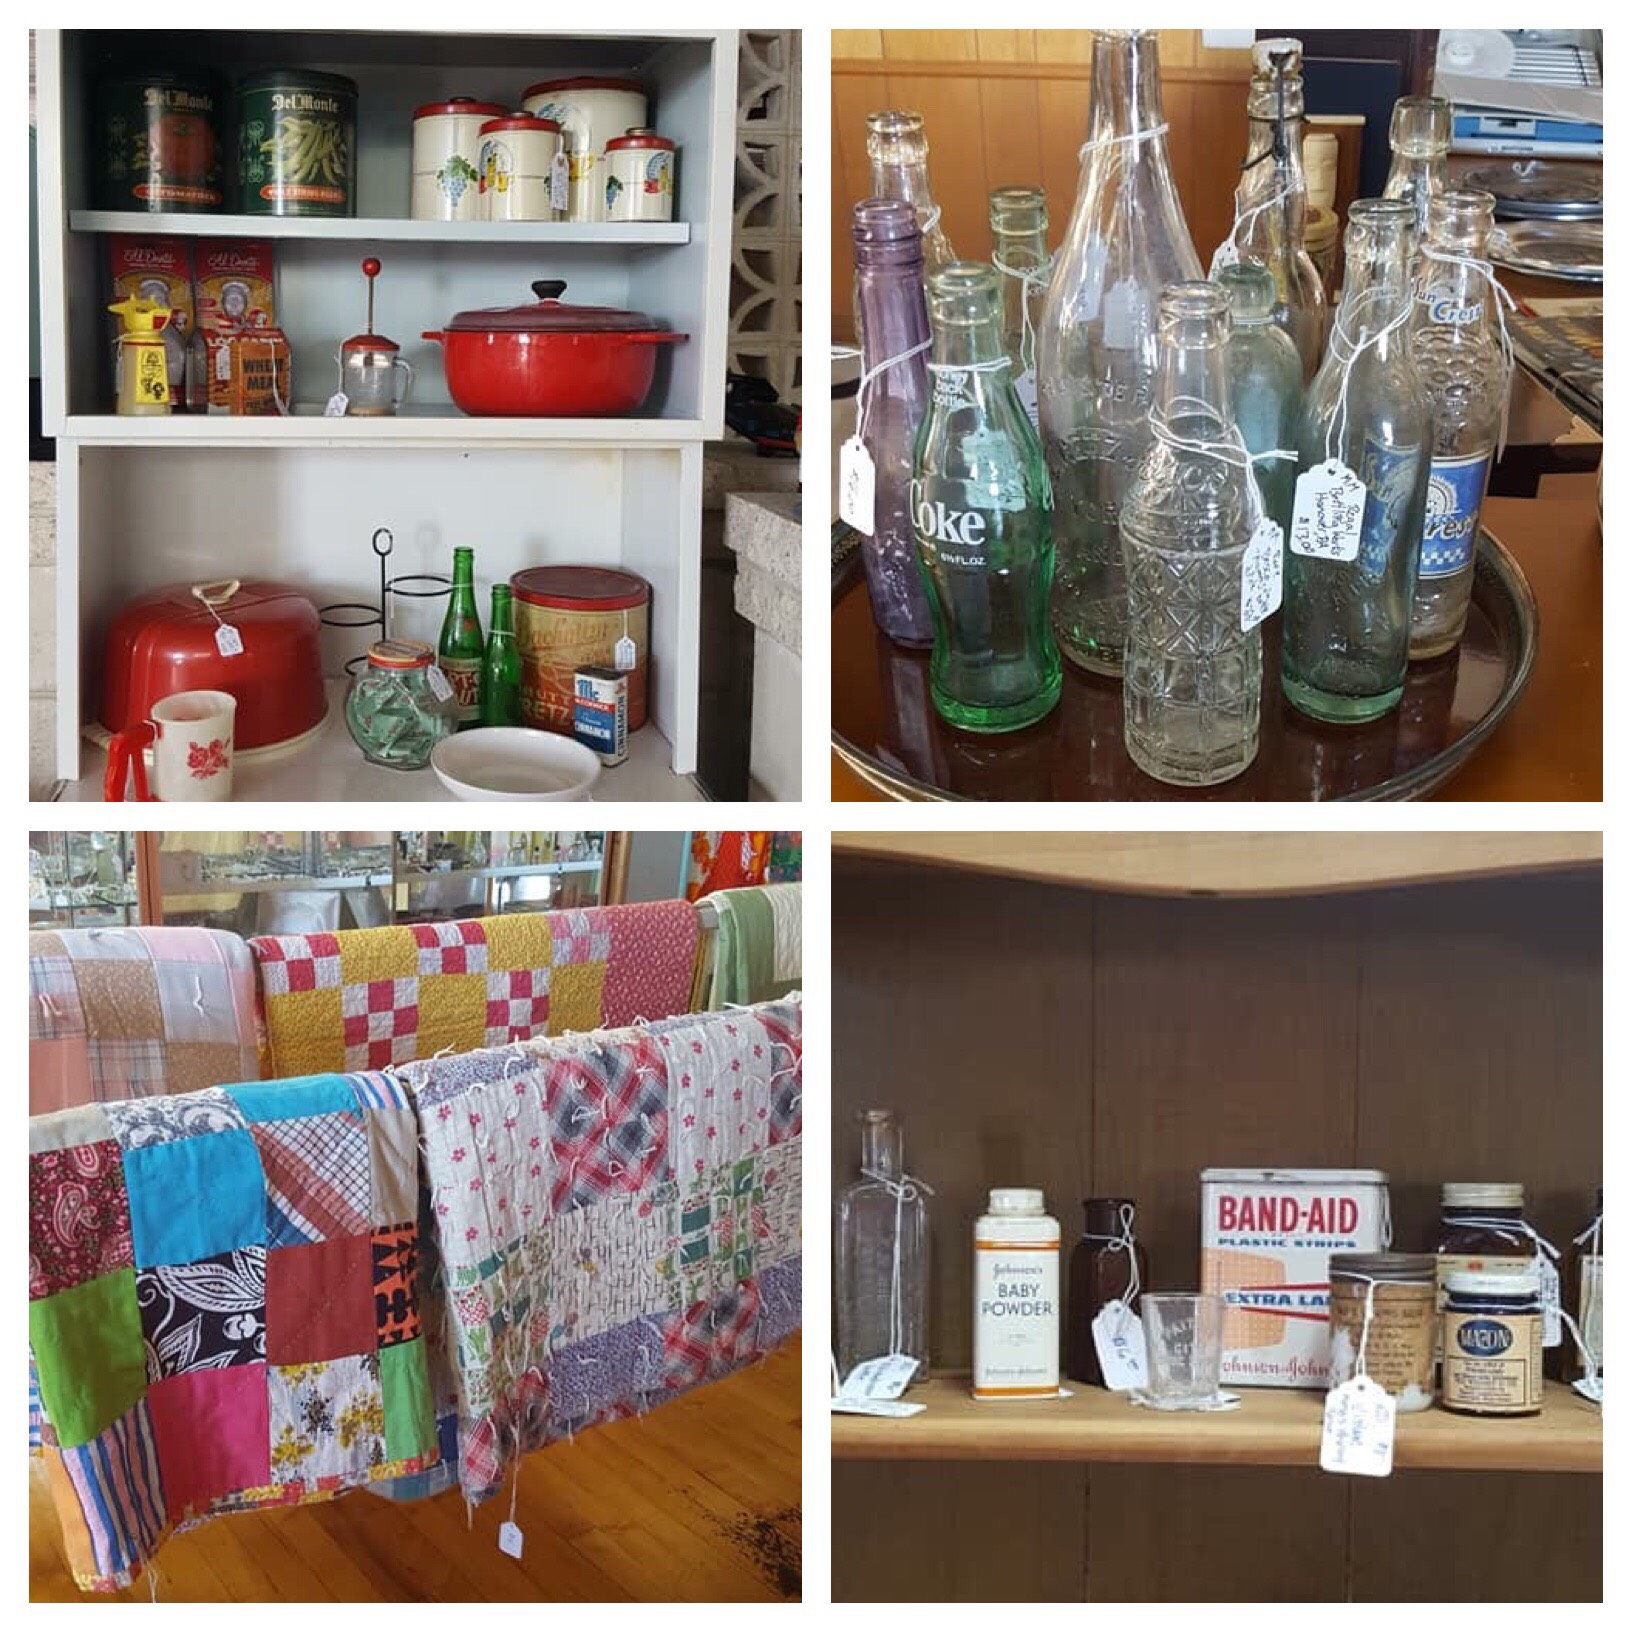 Funkey Finds - You'll never know what we've found from auctions and estate sales unless you come find out!